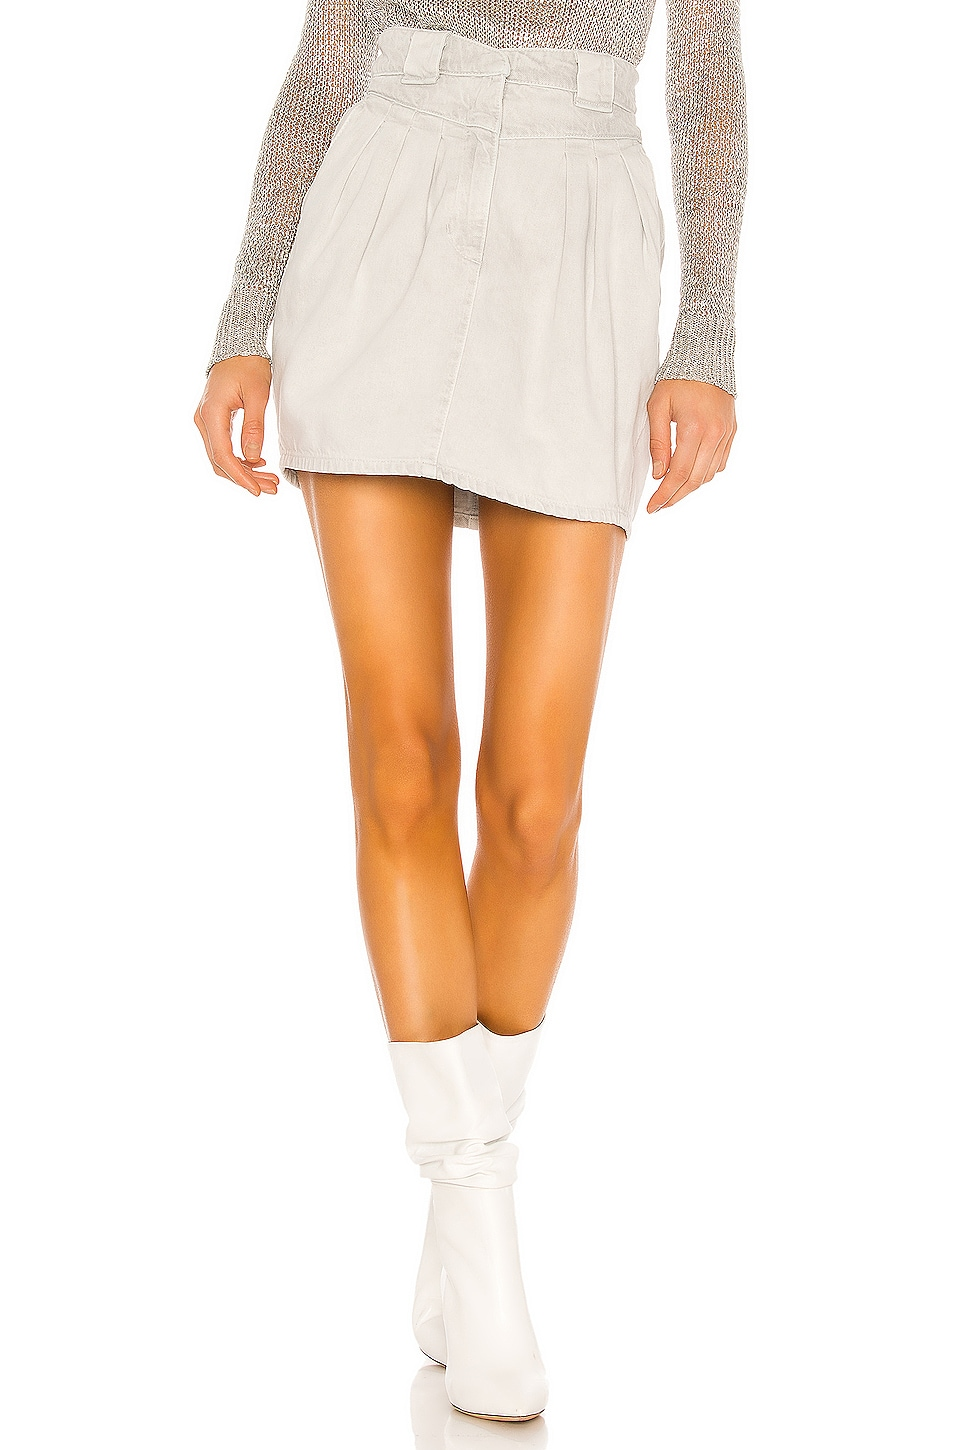 IRO Senti Skirt in Grey White